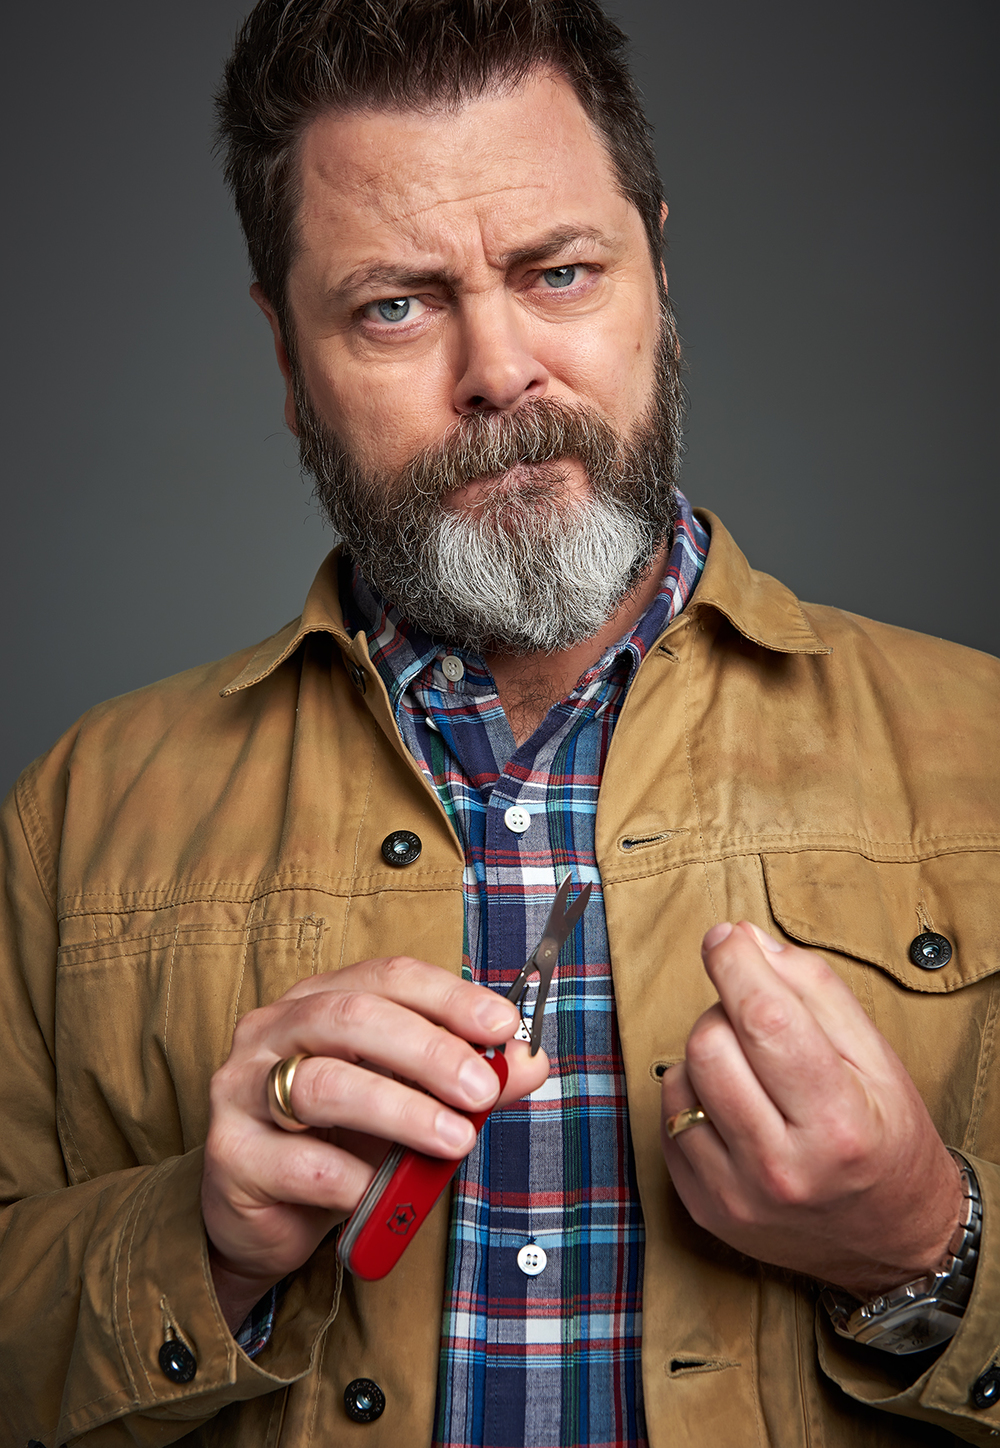 Hrz_NickOfferman8841v1.jpg